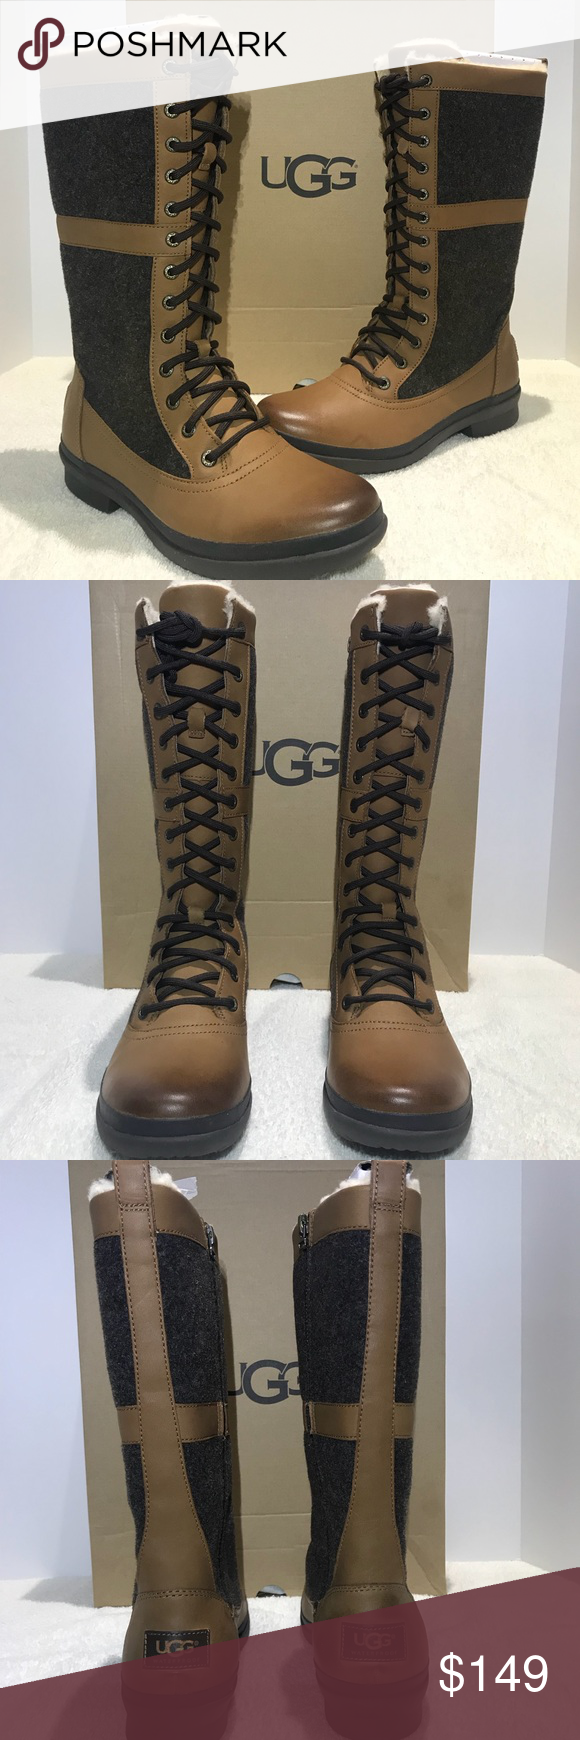 45a7c461d2a UGG Shoes | Ugg Elvia Tall Boots Women Laceup Chestnut 1018473 ...